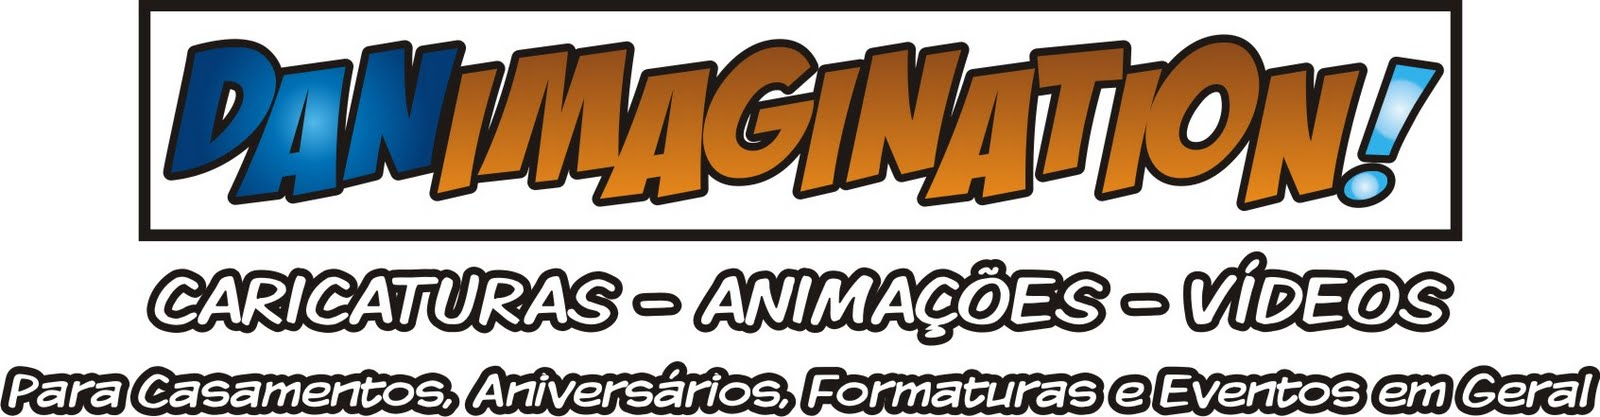 Danimagination! - Caricaturas